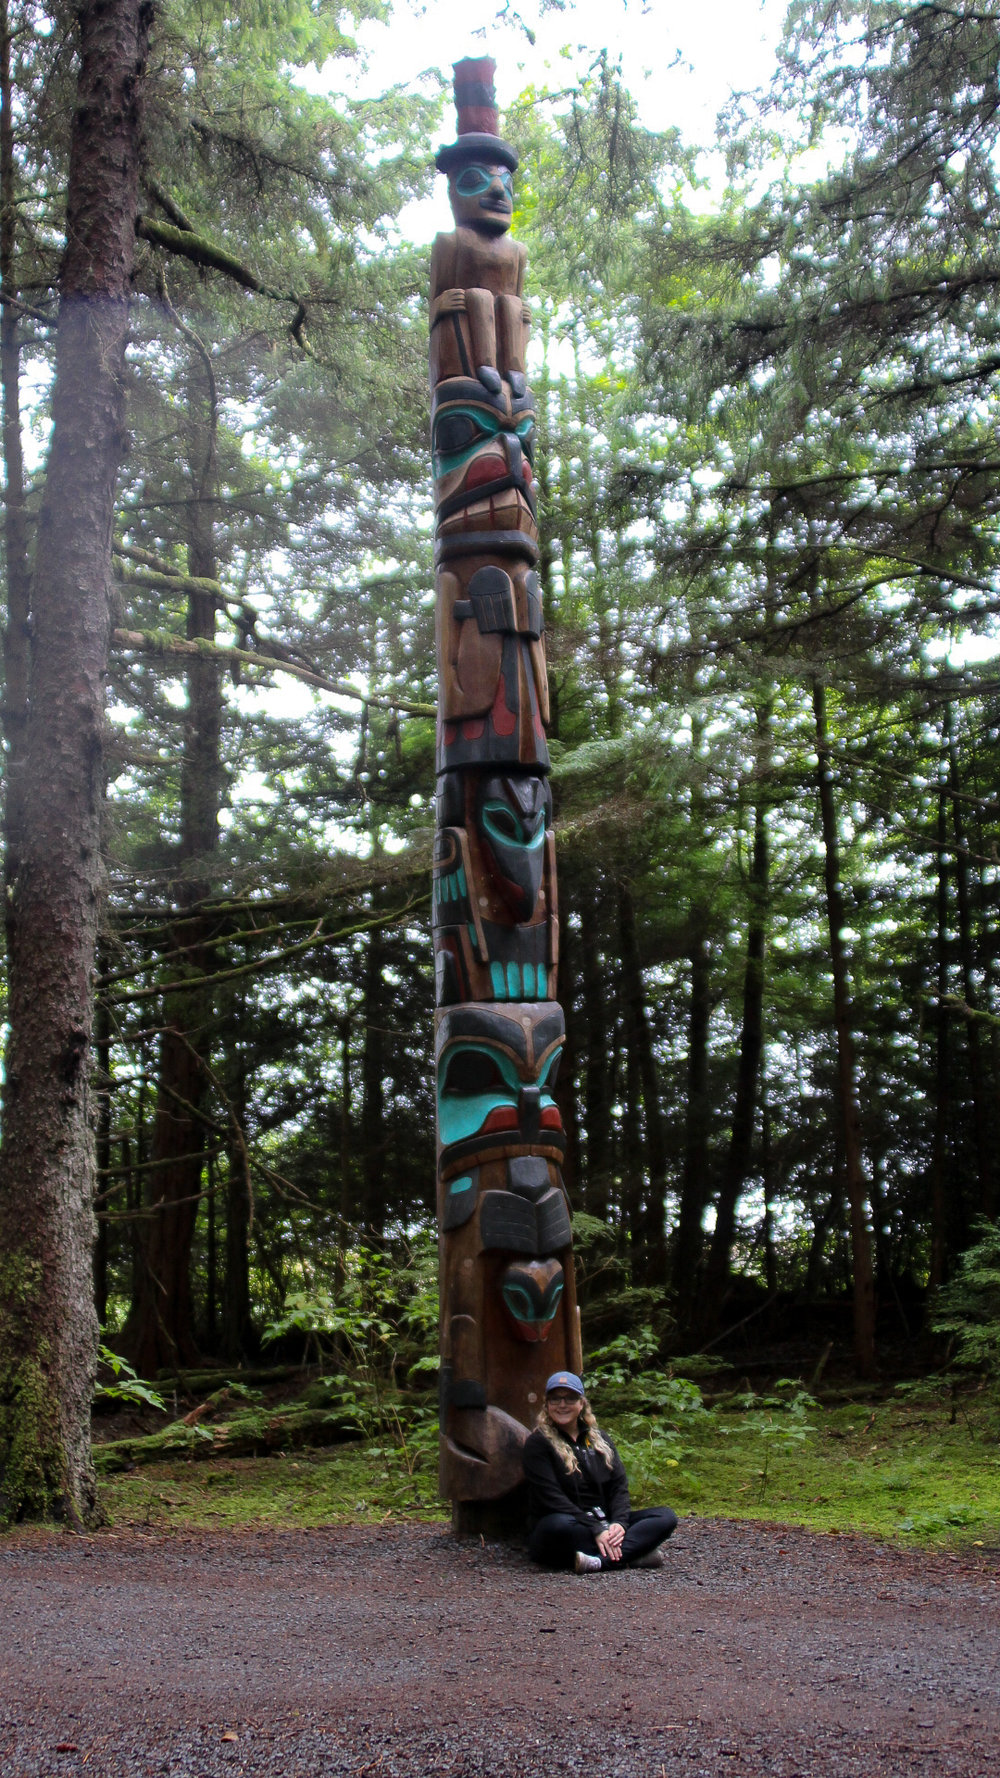 This National Park also had a TON of totem poles! Super cool to see these up and in person!